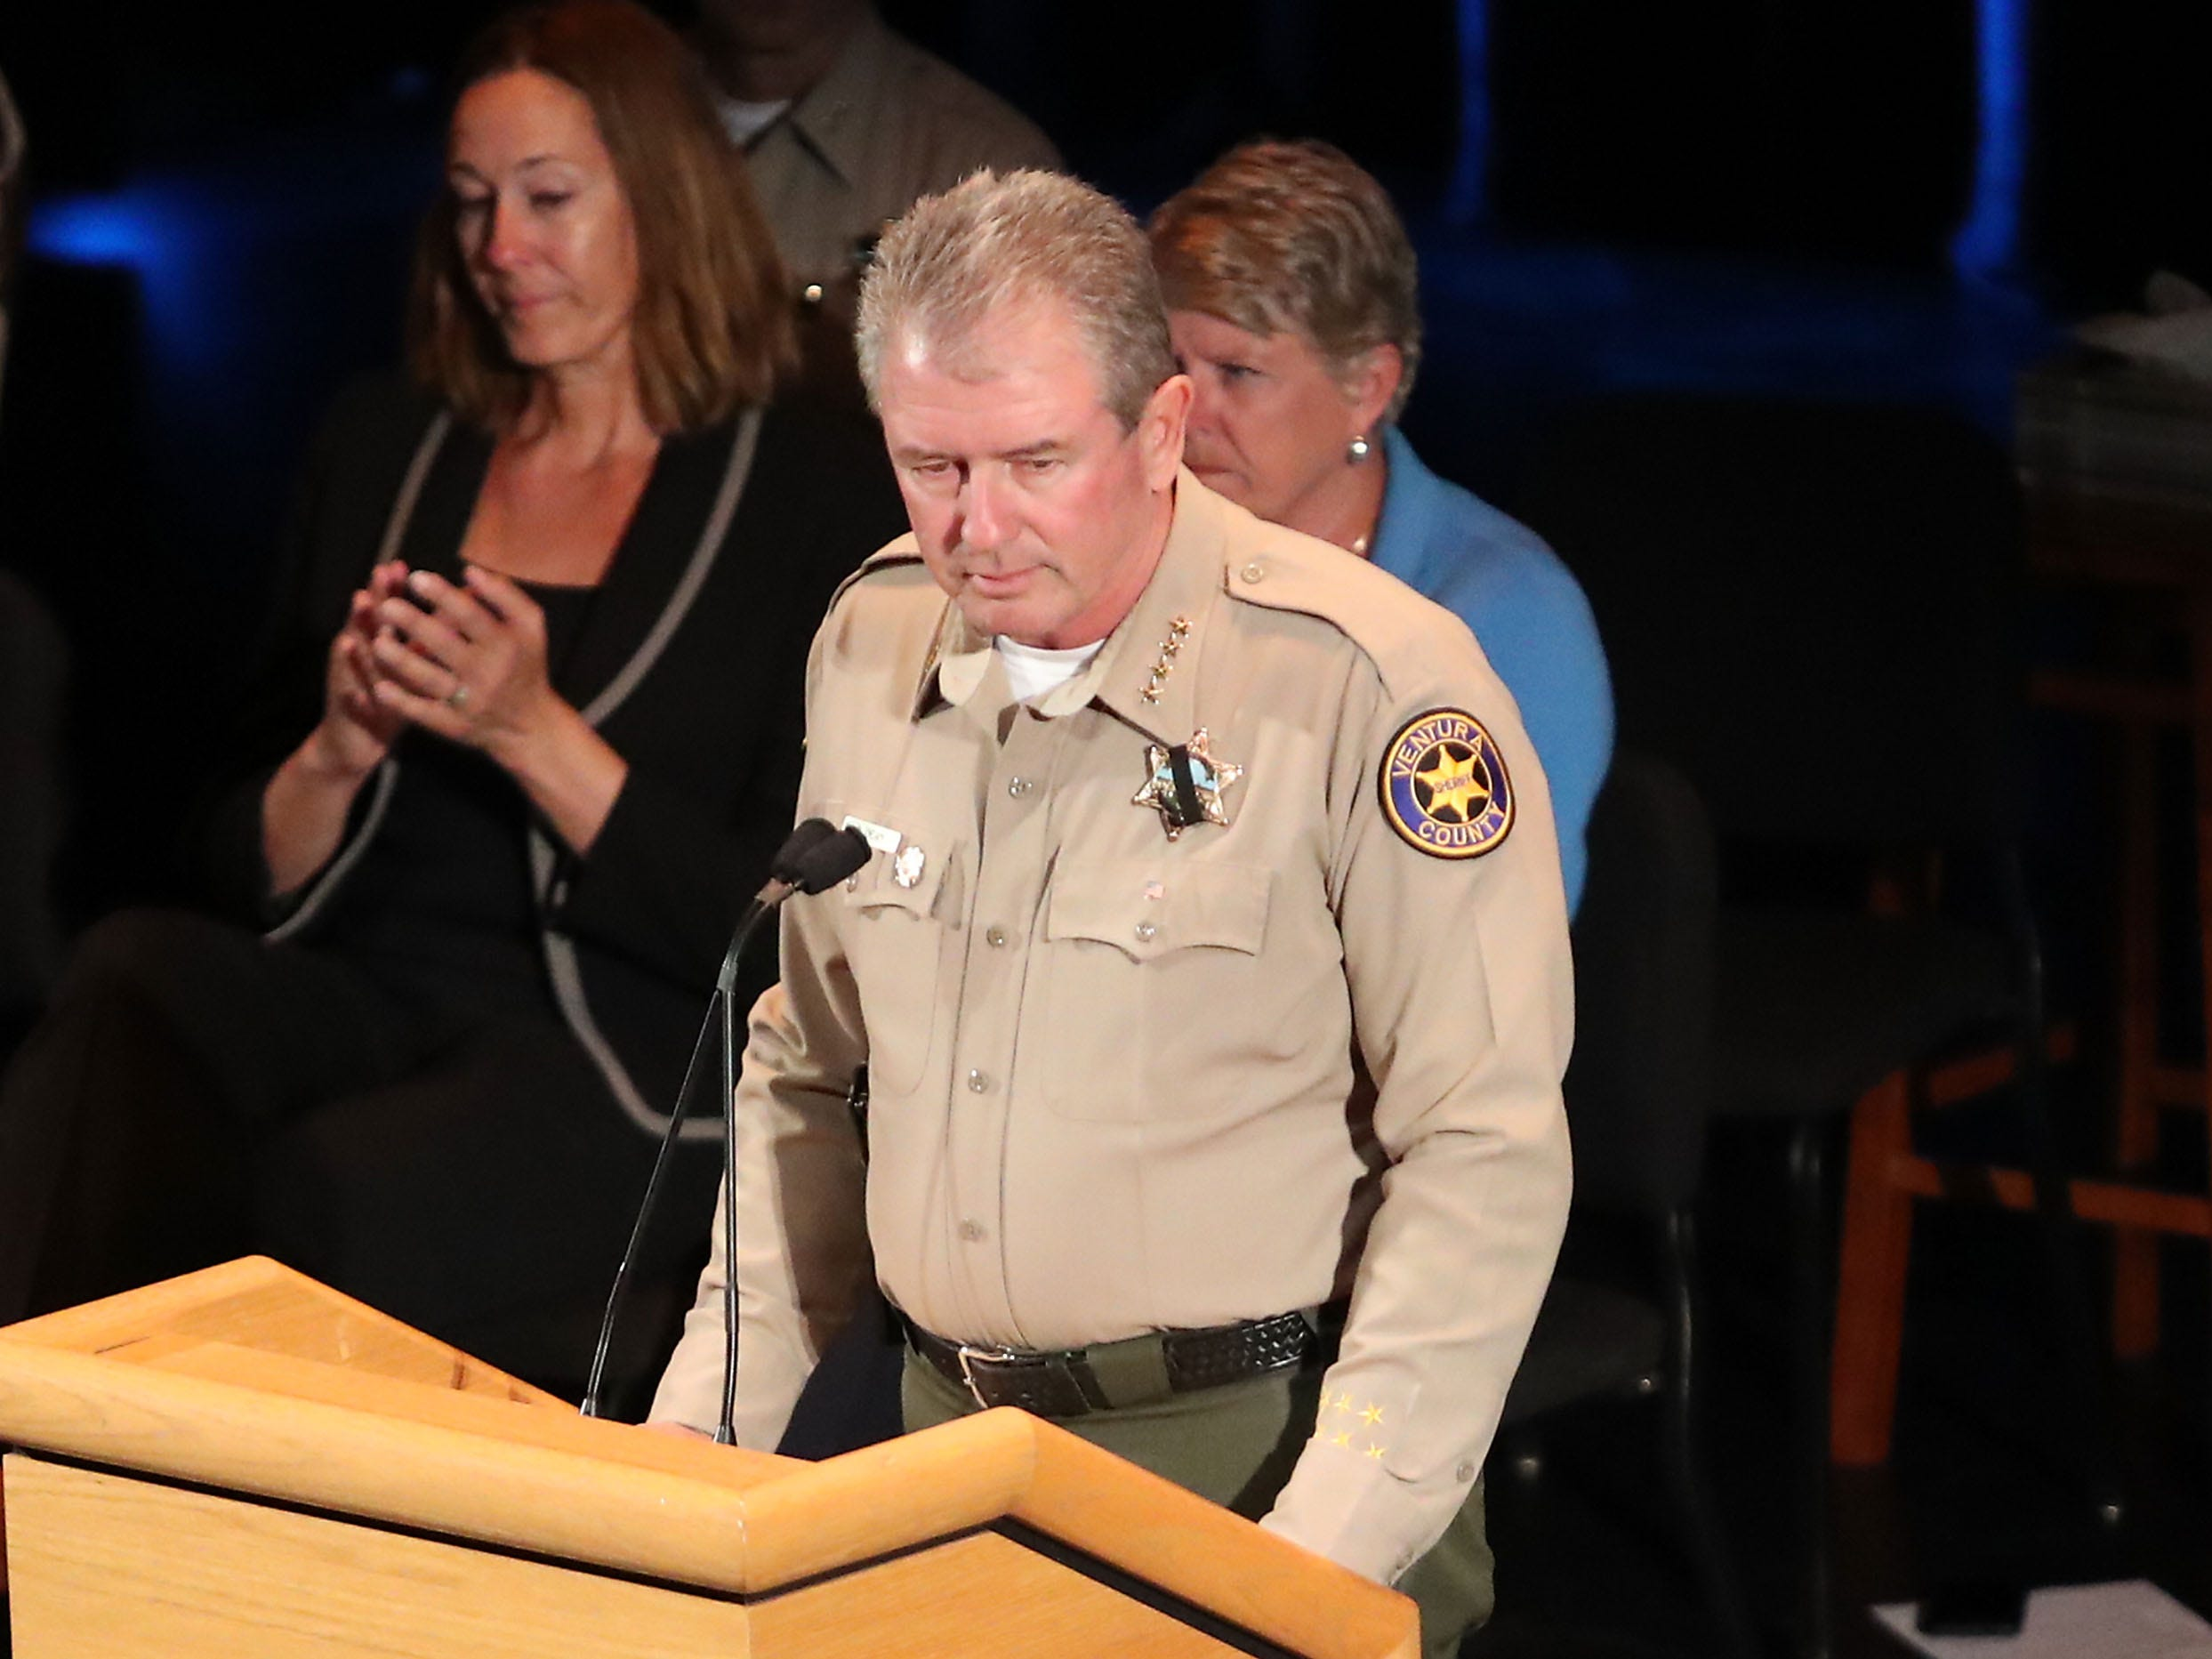 Ventura County Sheriff Geoff Dean speaks at a vigil for the shooting victims at the Thousand Oaks Civic Arts Plaza, Nov. 8, 2018, in Thousand Oaks, Calif.